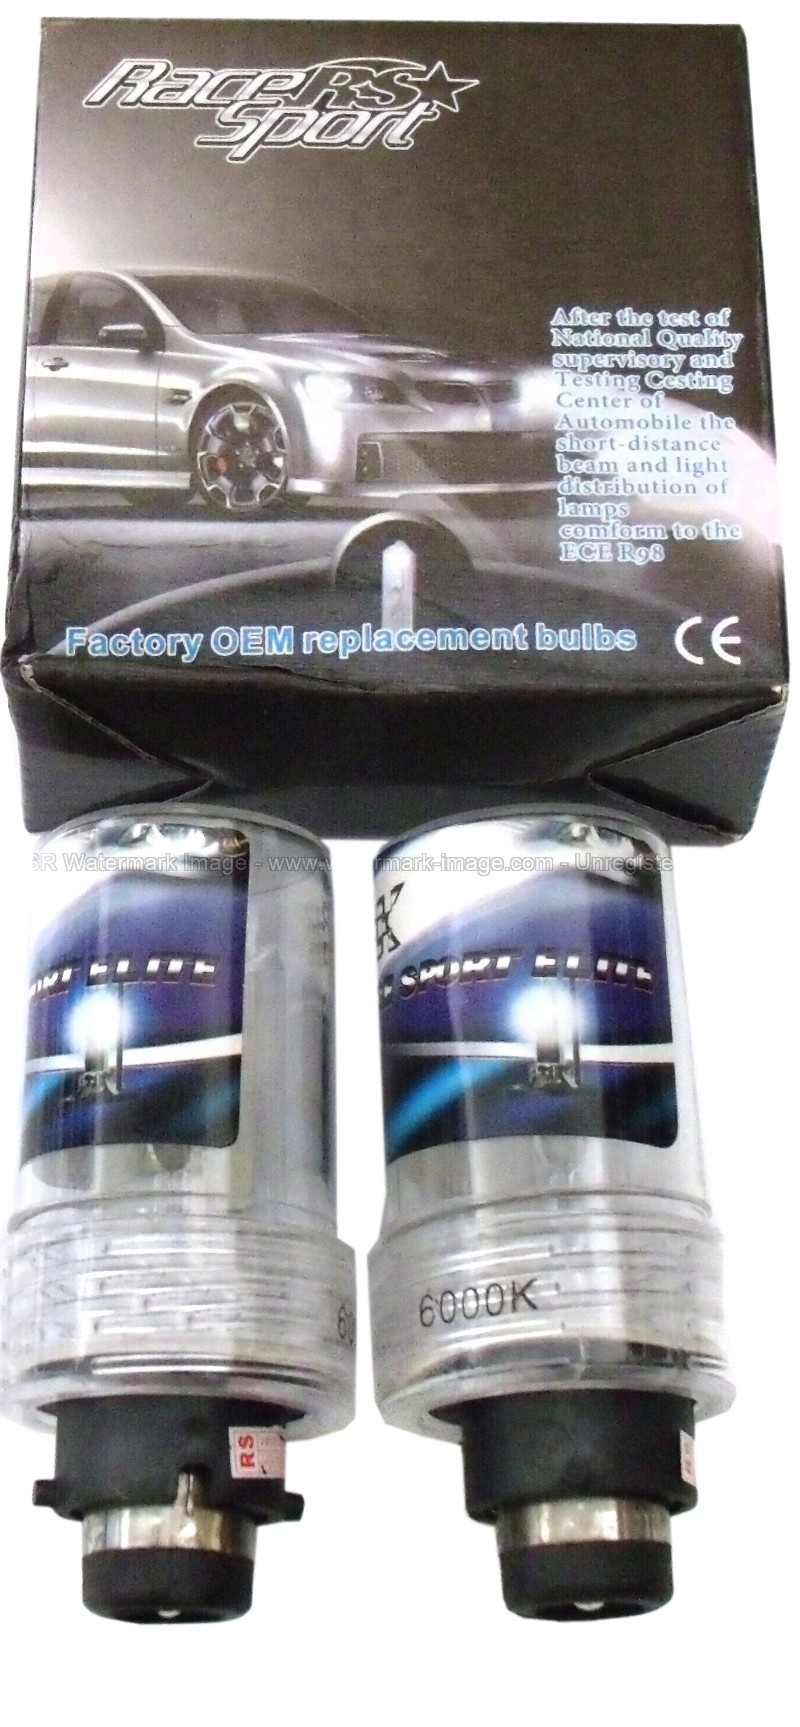 Race Sport Lighting D4 PINK OEM Factory HID Replacement Bulbs - D4-PINK-SB-RB